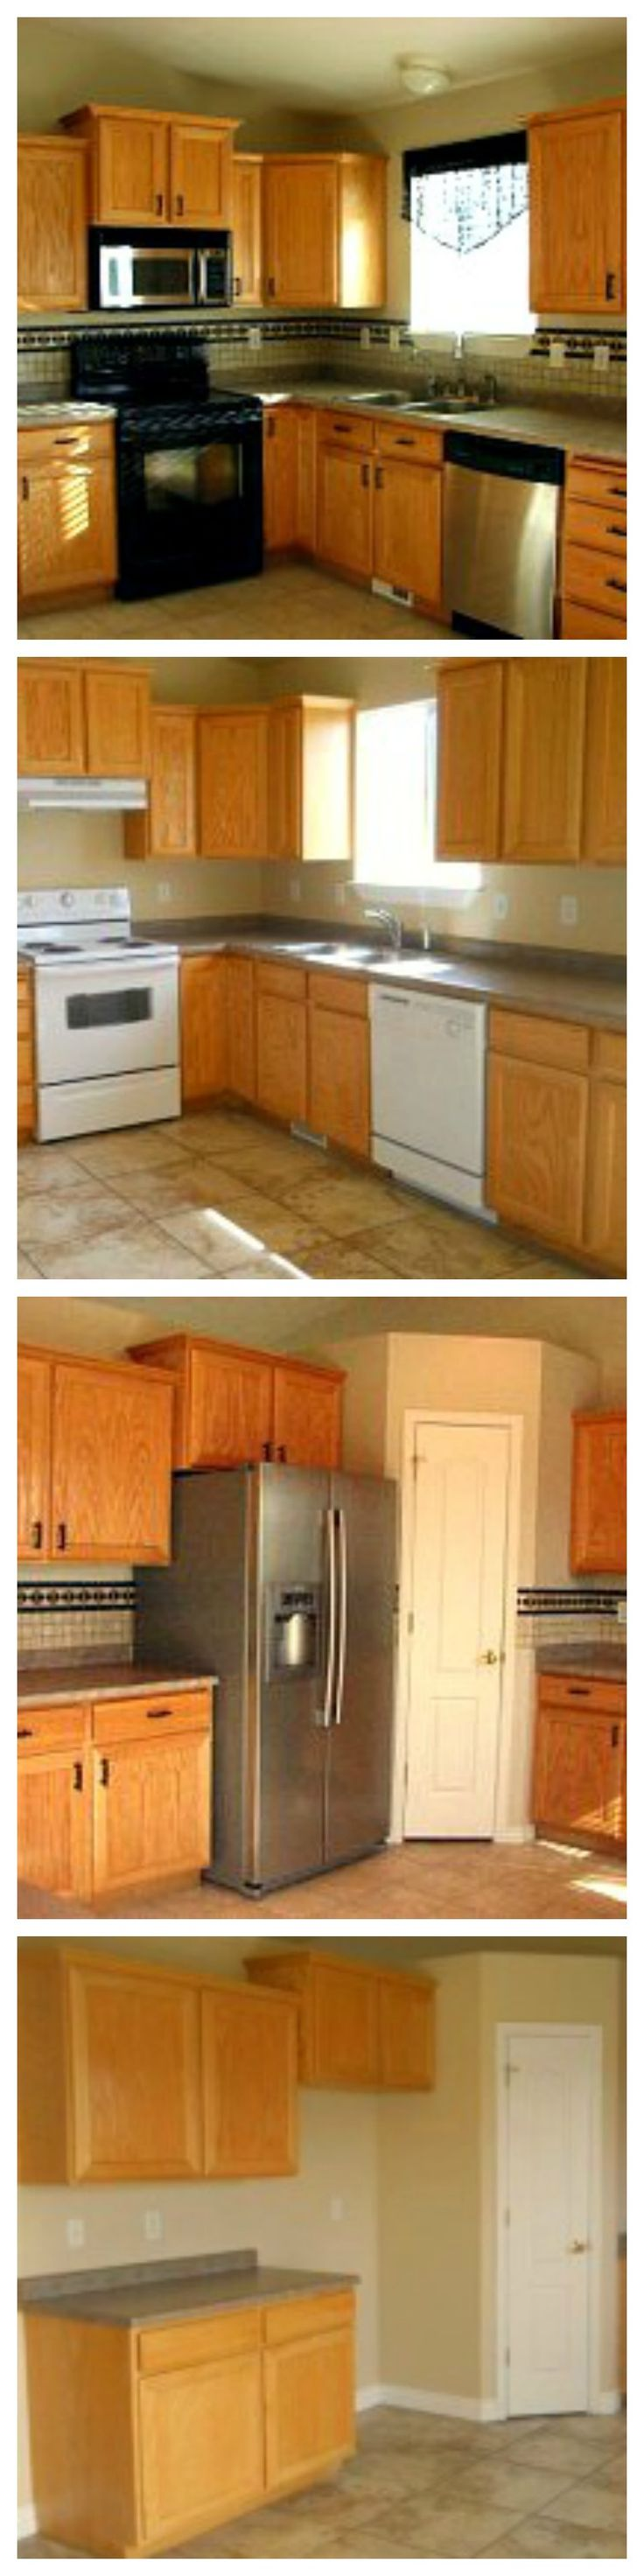 1000 images about split level kitchen remodel on for Split level home kitchen ideas